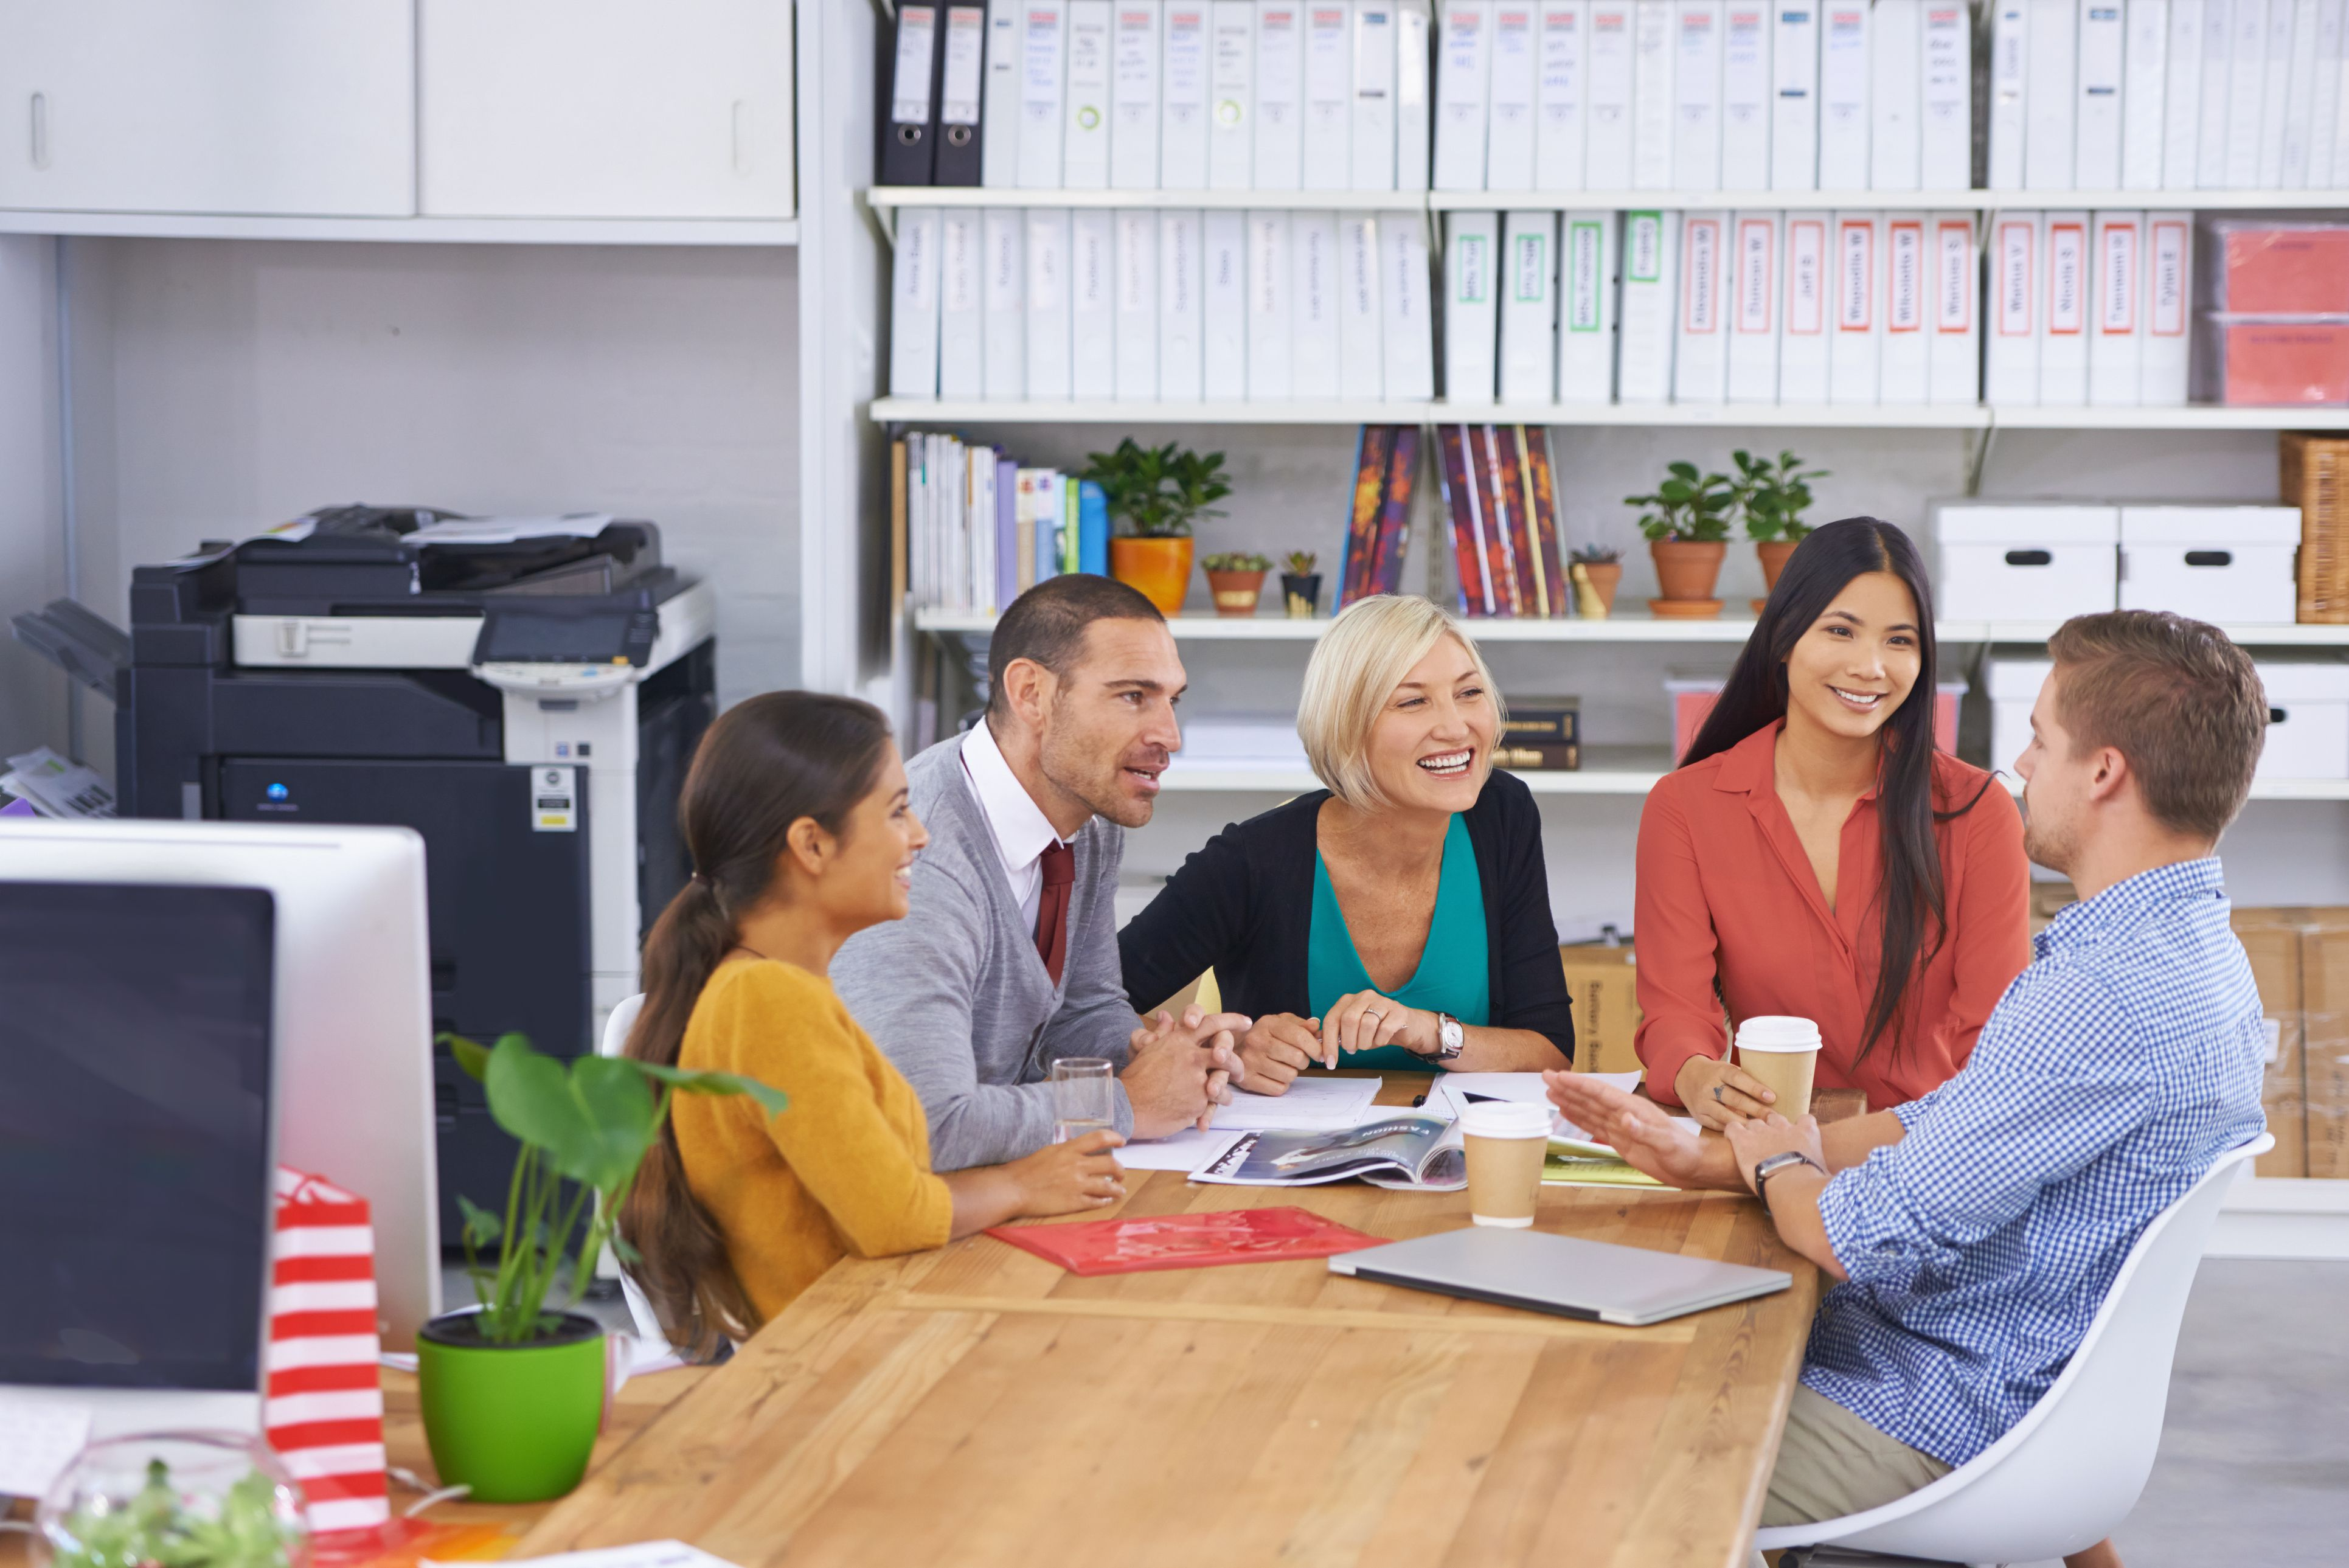 With Happy Employees Your Business Is More Productive